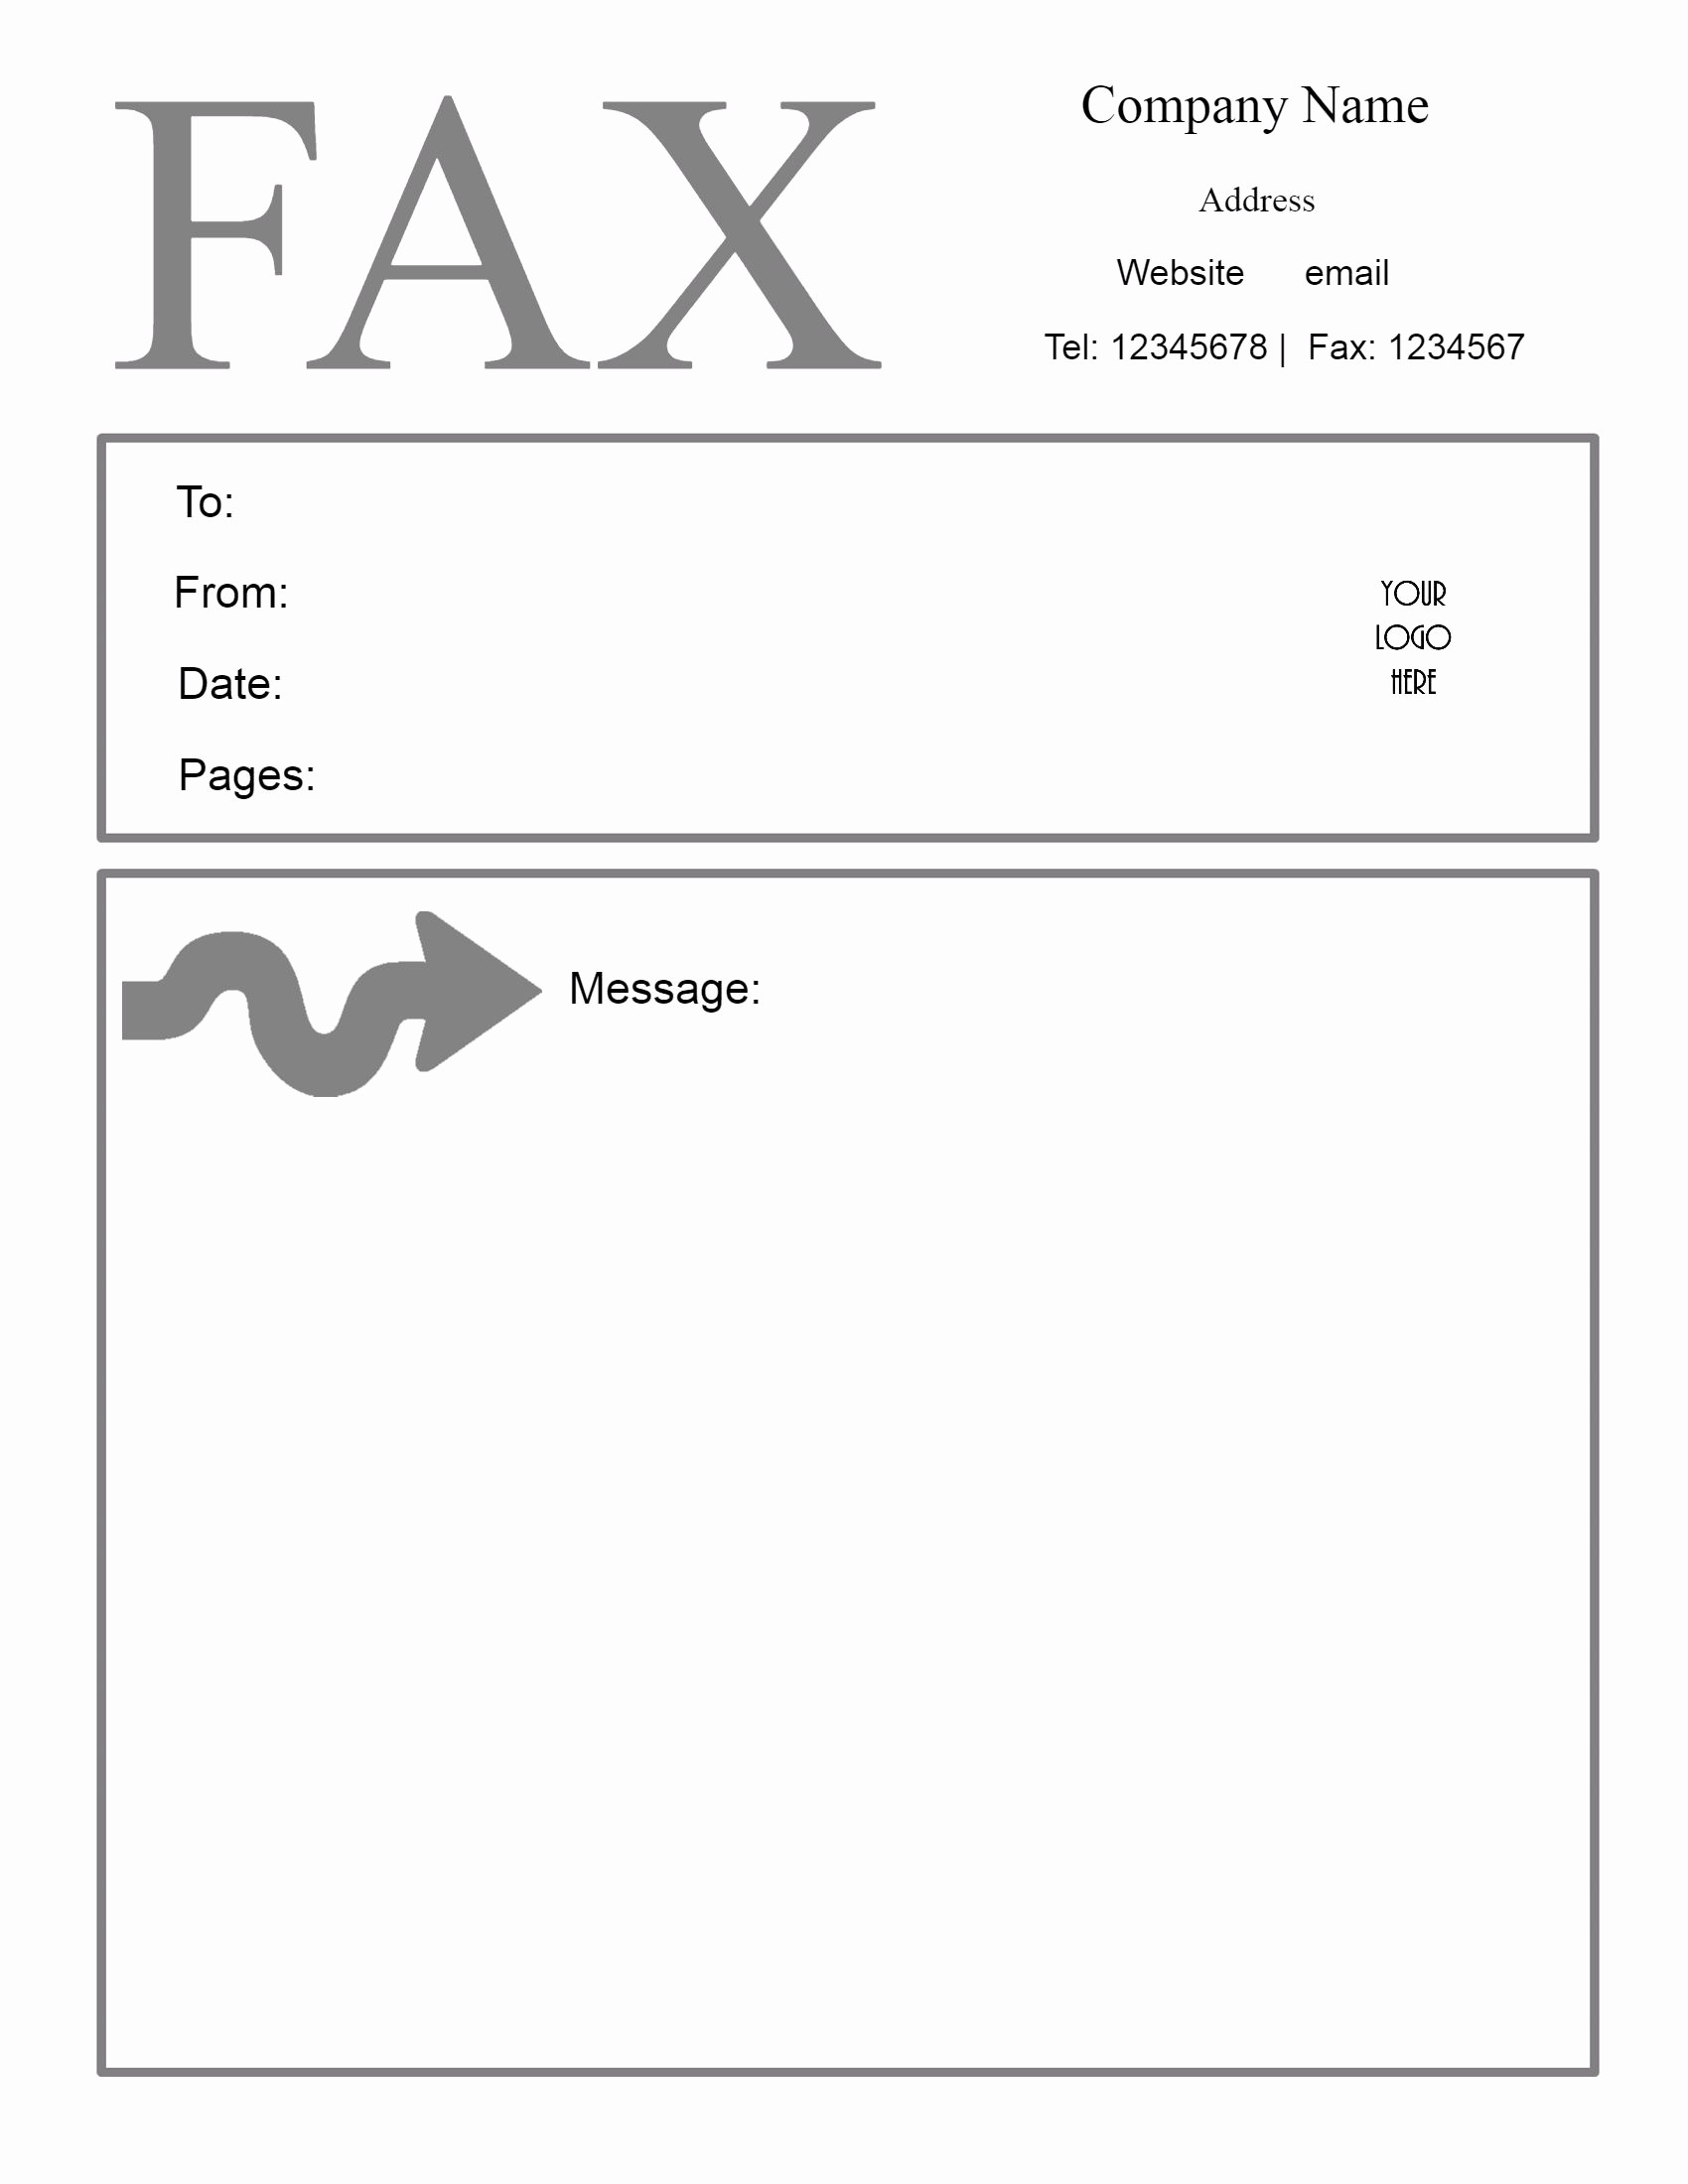 Cover Sheet for A Fax New Free Fax Cover Letter Template